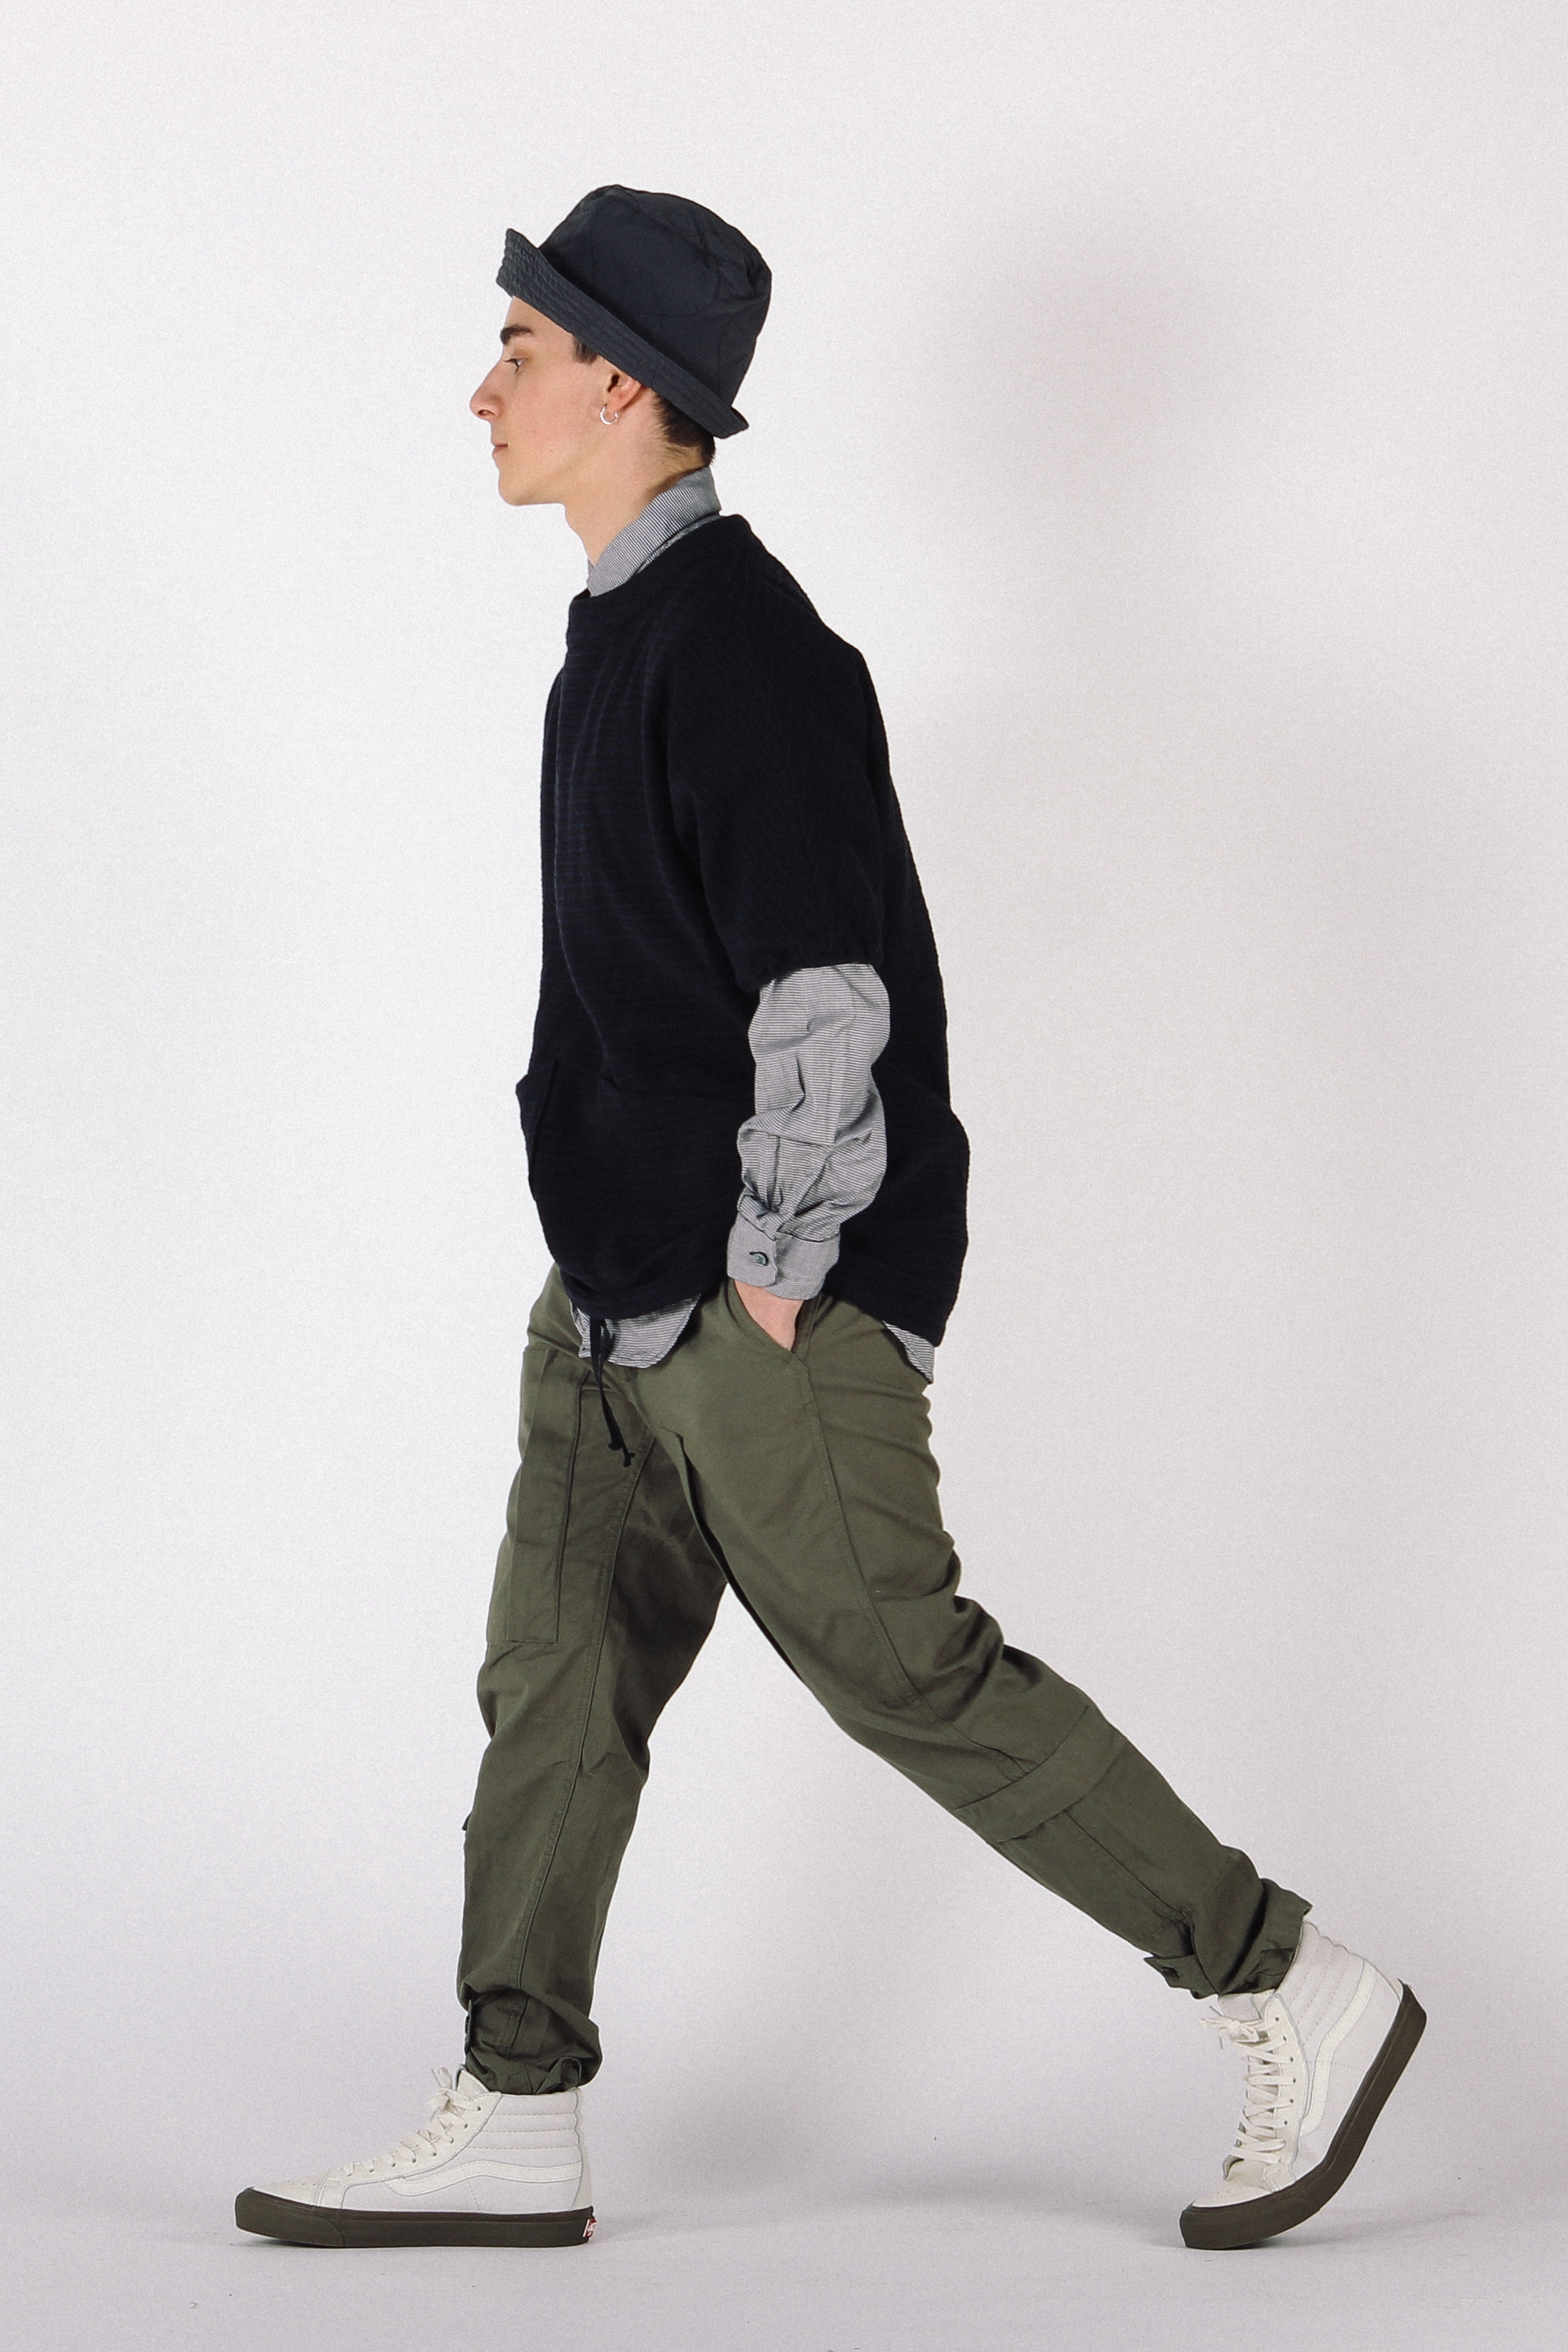 Hat: Engineered Garments Bucket Hat Top: Engineered Garments Smock Shirt Shirt: Engineered Garments Short Collar Shirt Pants: Engineered Garments Flight Pant Shoes: Vault by Vans Sk8-Hi LX